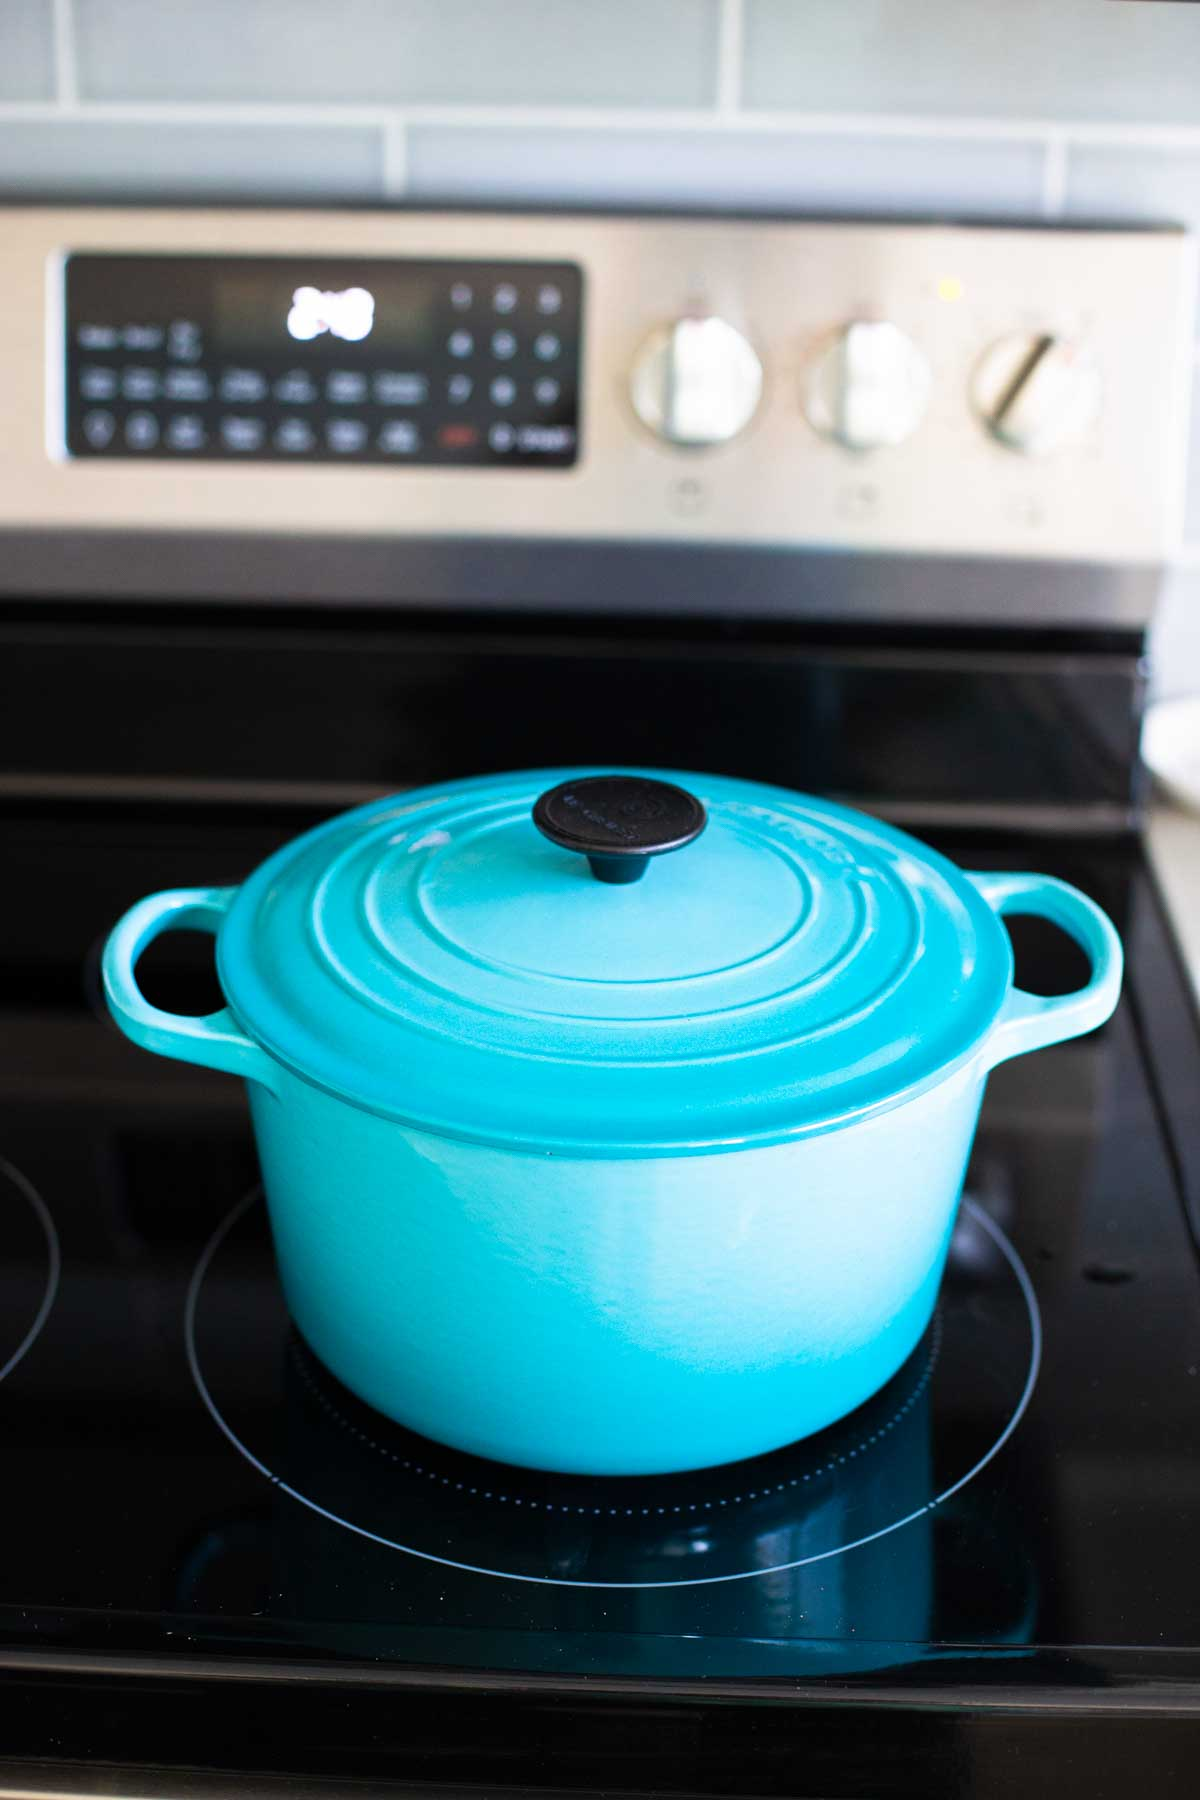 The blue dutch oven has the lid covering the stew cooking on the stove top.